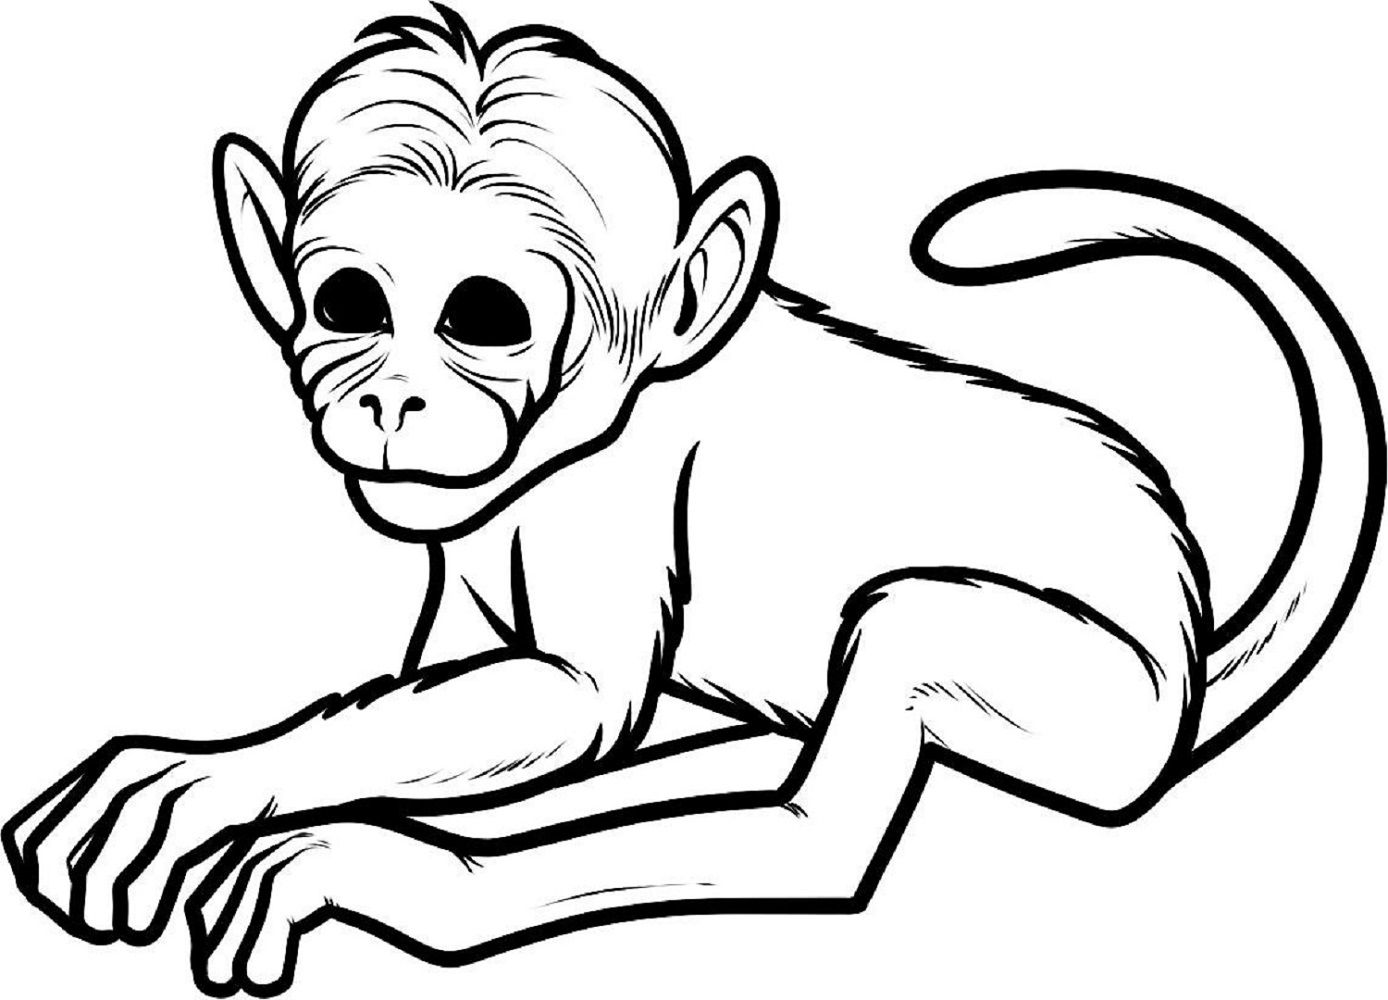 monkey pictures for coloring top 25 free printable monkey coloring pages for kids coloring pictures monkey for